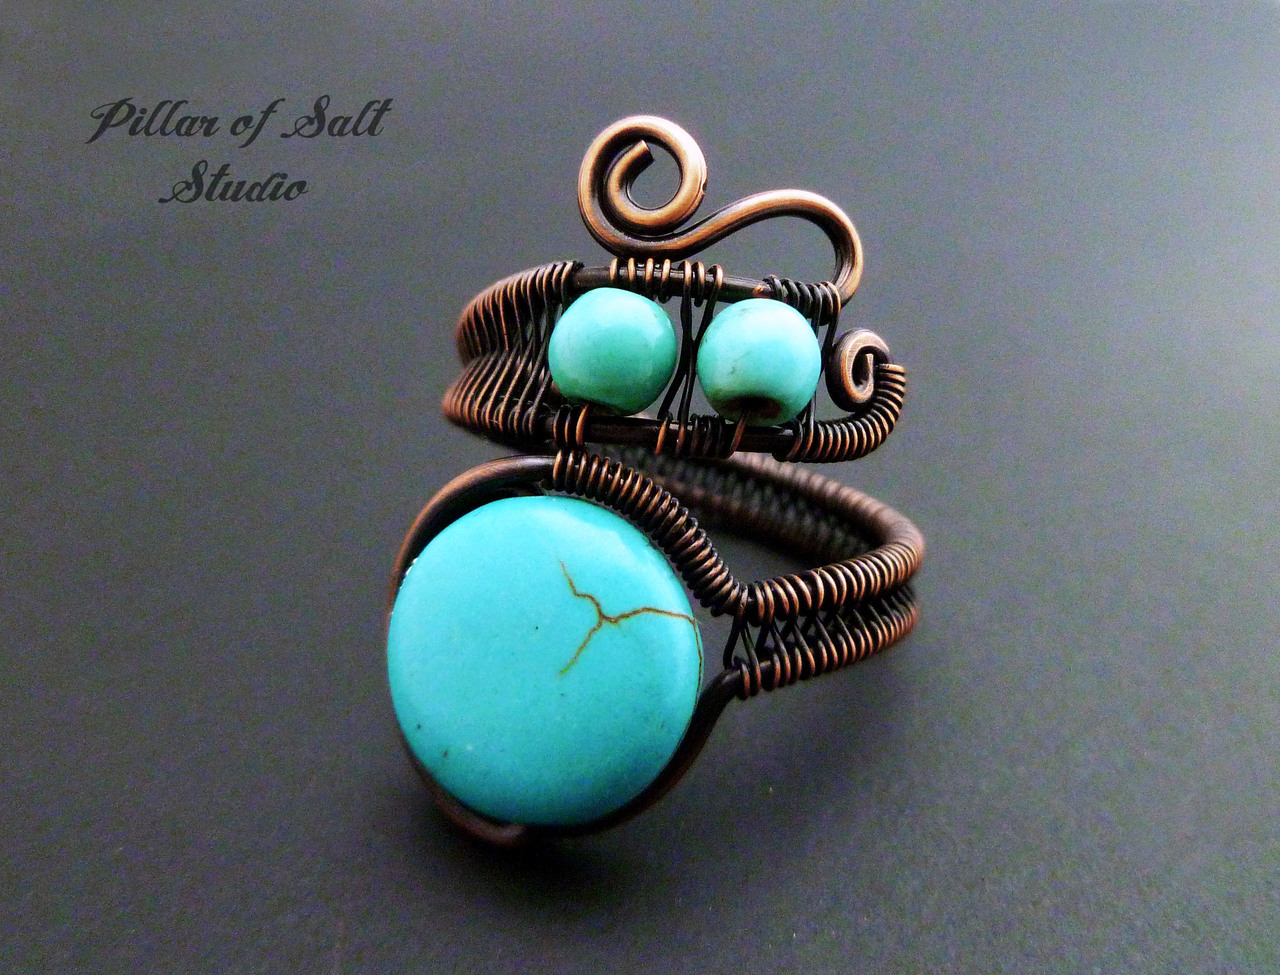 Copper wire wrapped boho ring / Pillar of Salt Studio